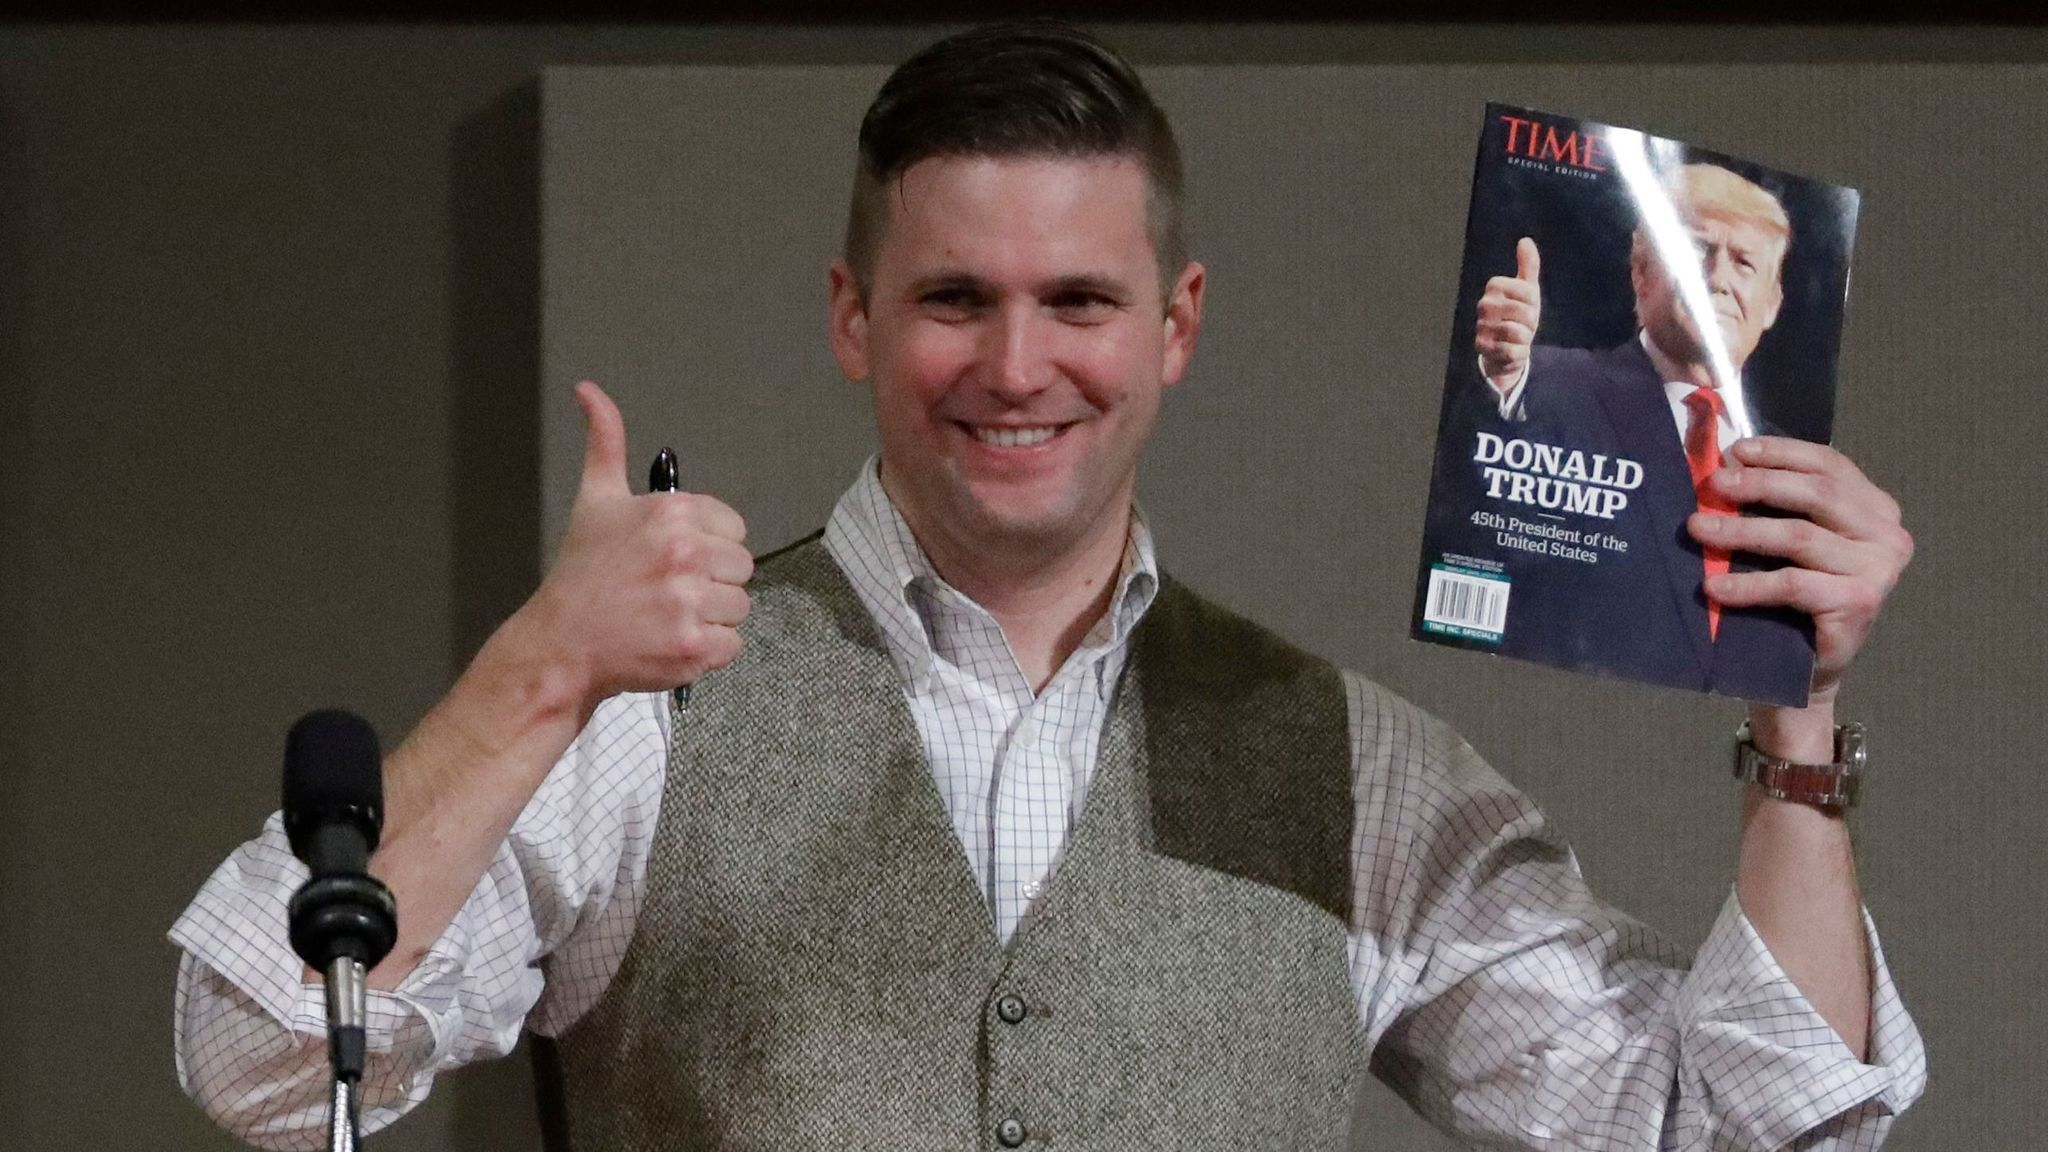 Image result for images of richard spencer and Trump